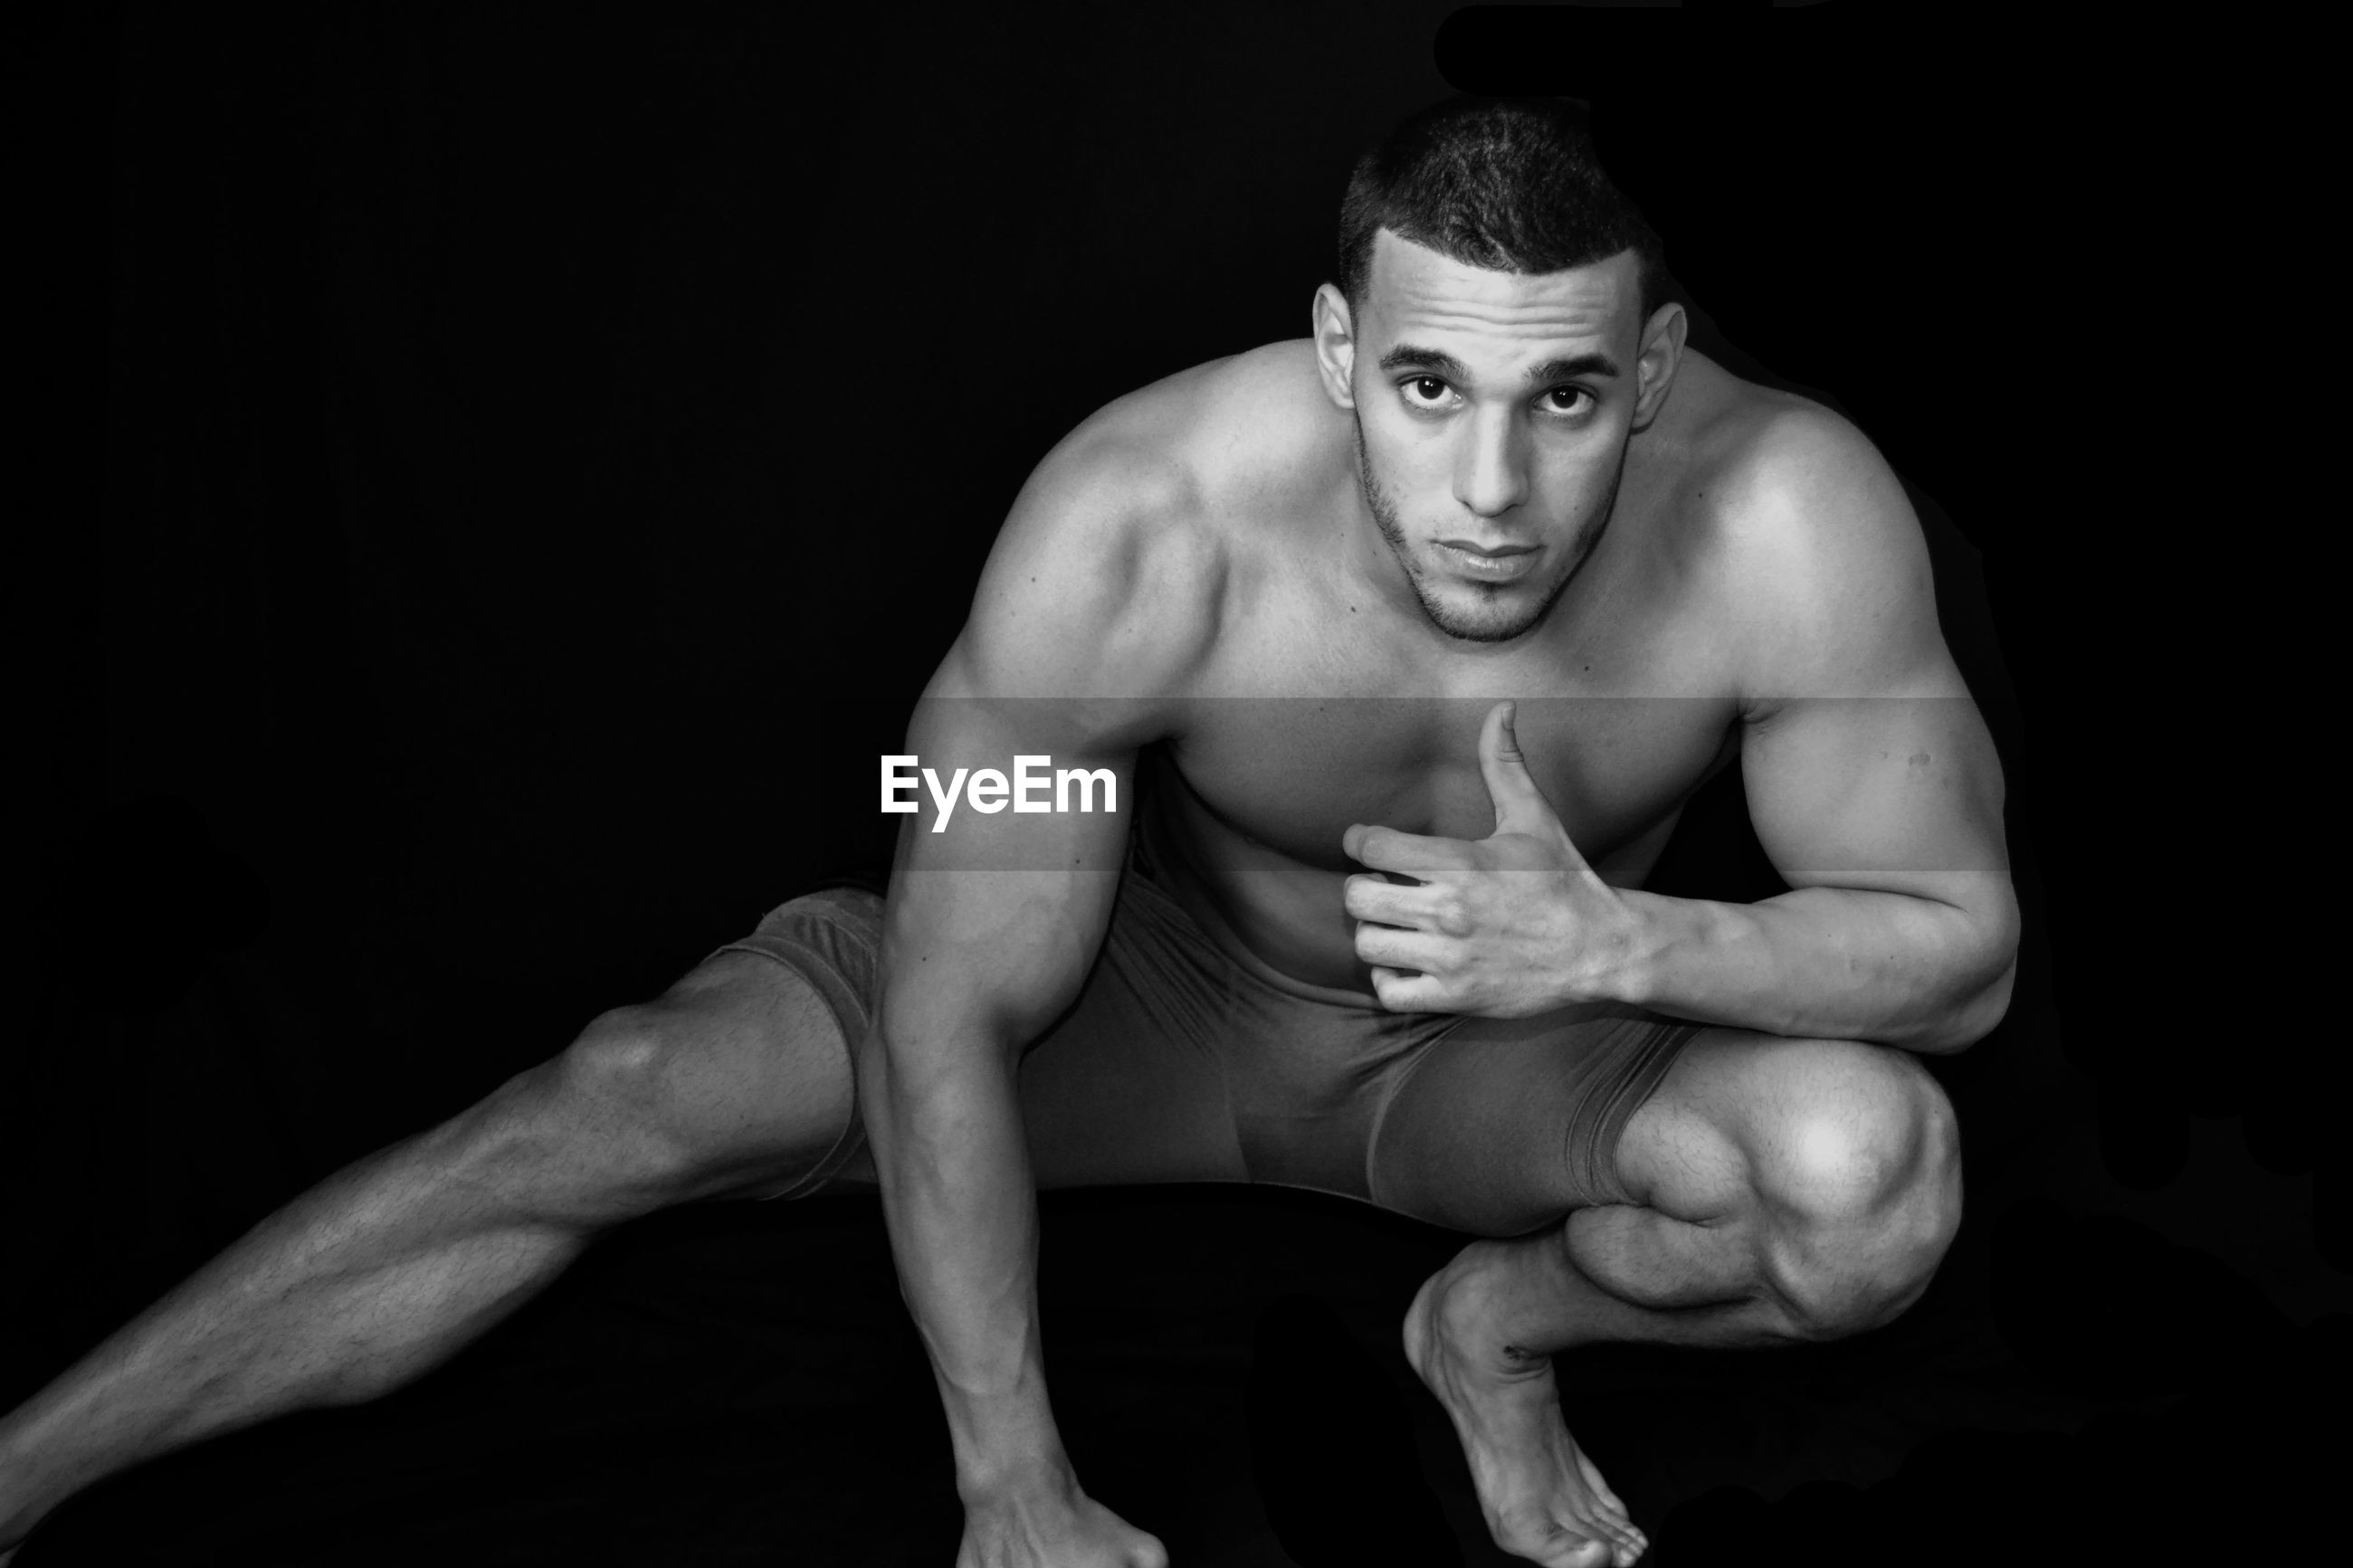 Portrait of young muscular man exercising against black background